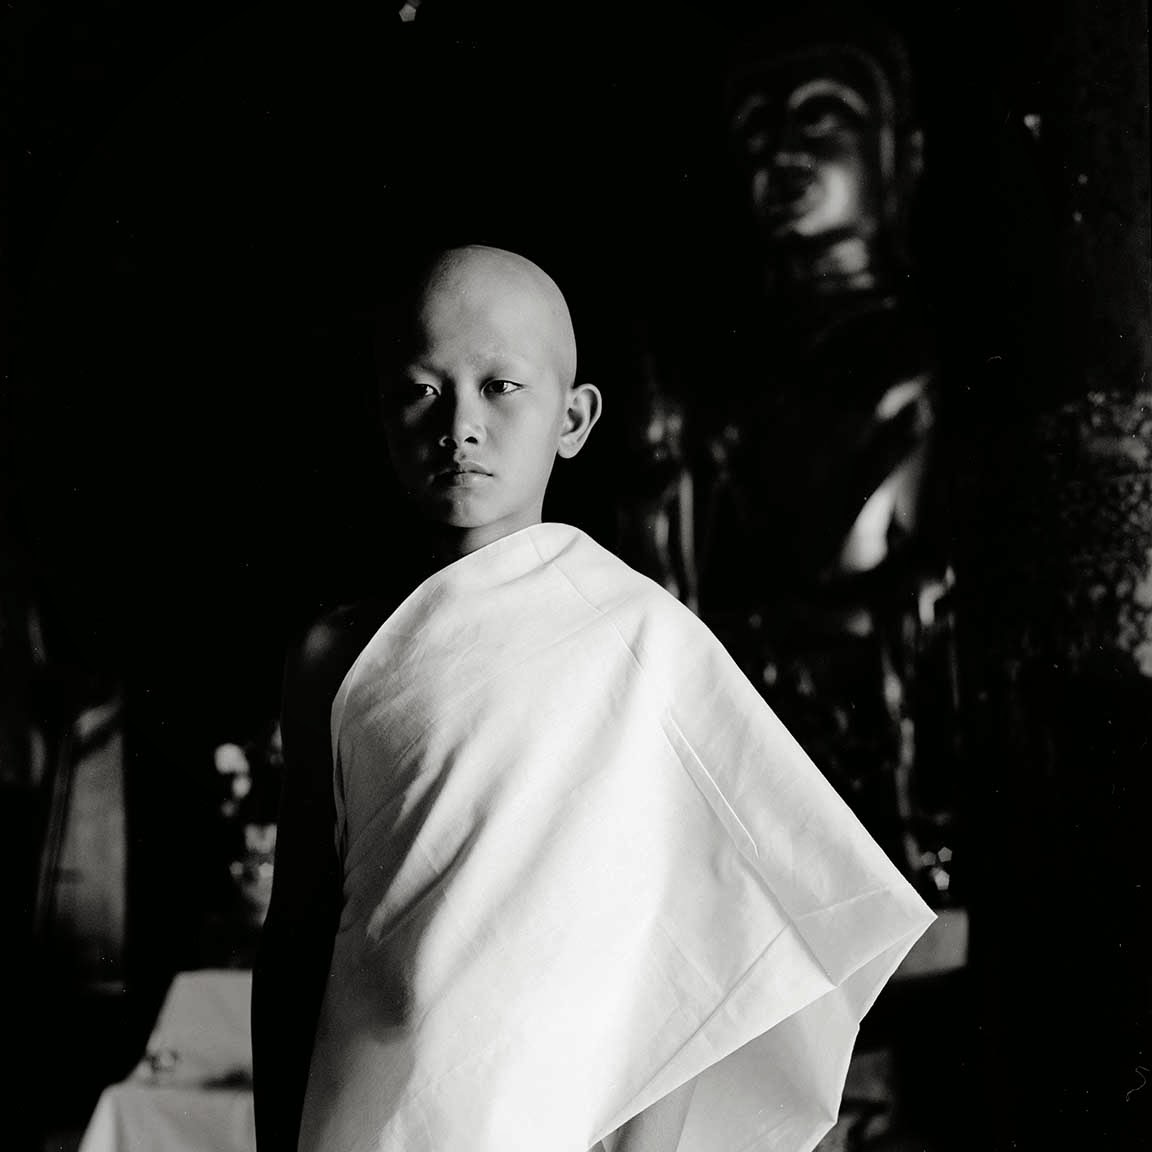 essays on living by the 5 precepts of becoming ethical The buddhist precepts are not a list of commandments to follow the precepts are connected to the ethical conduct part of the path becoming a buddhist.